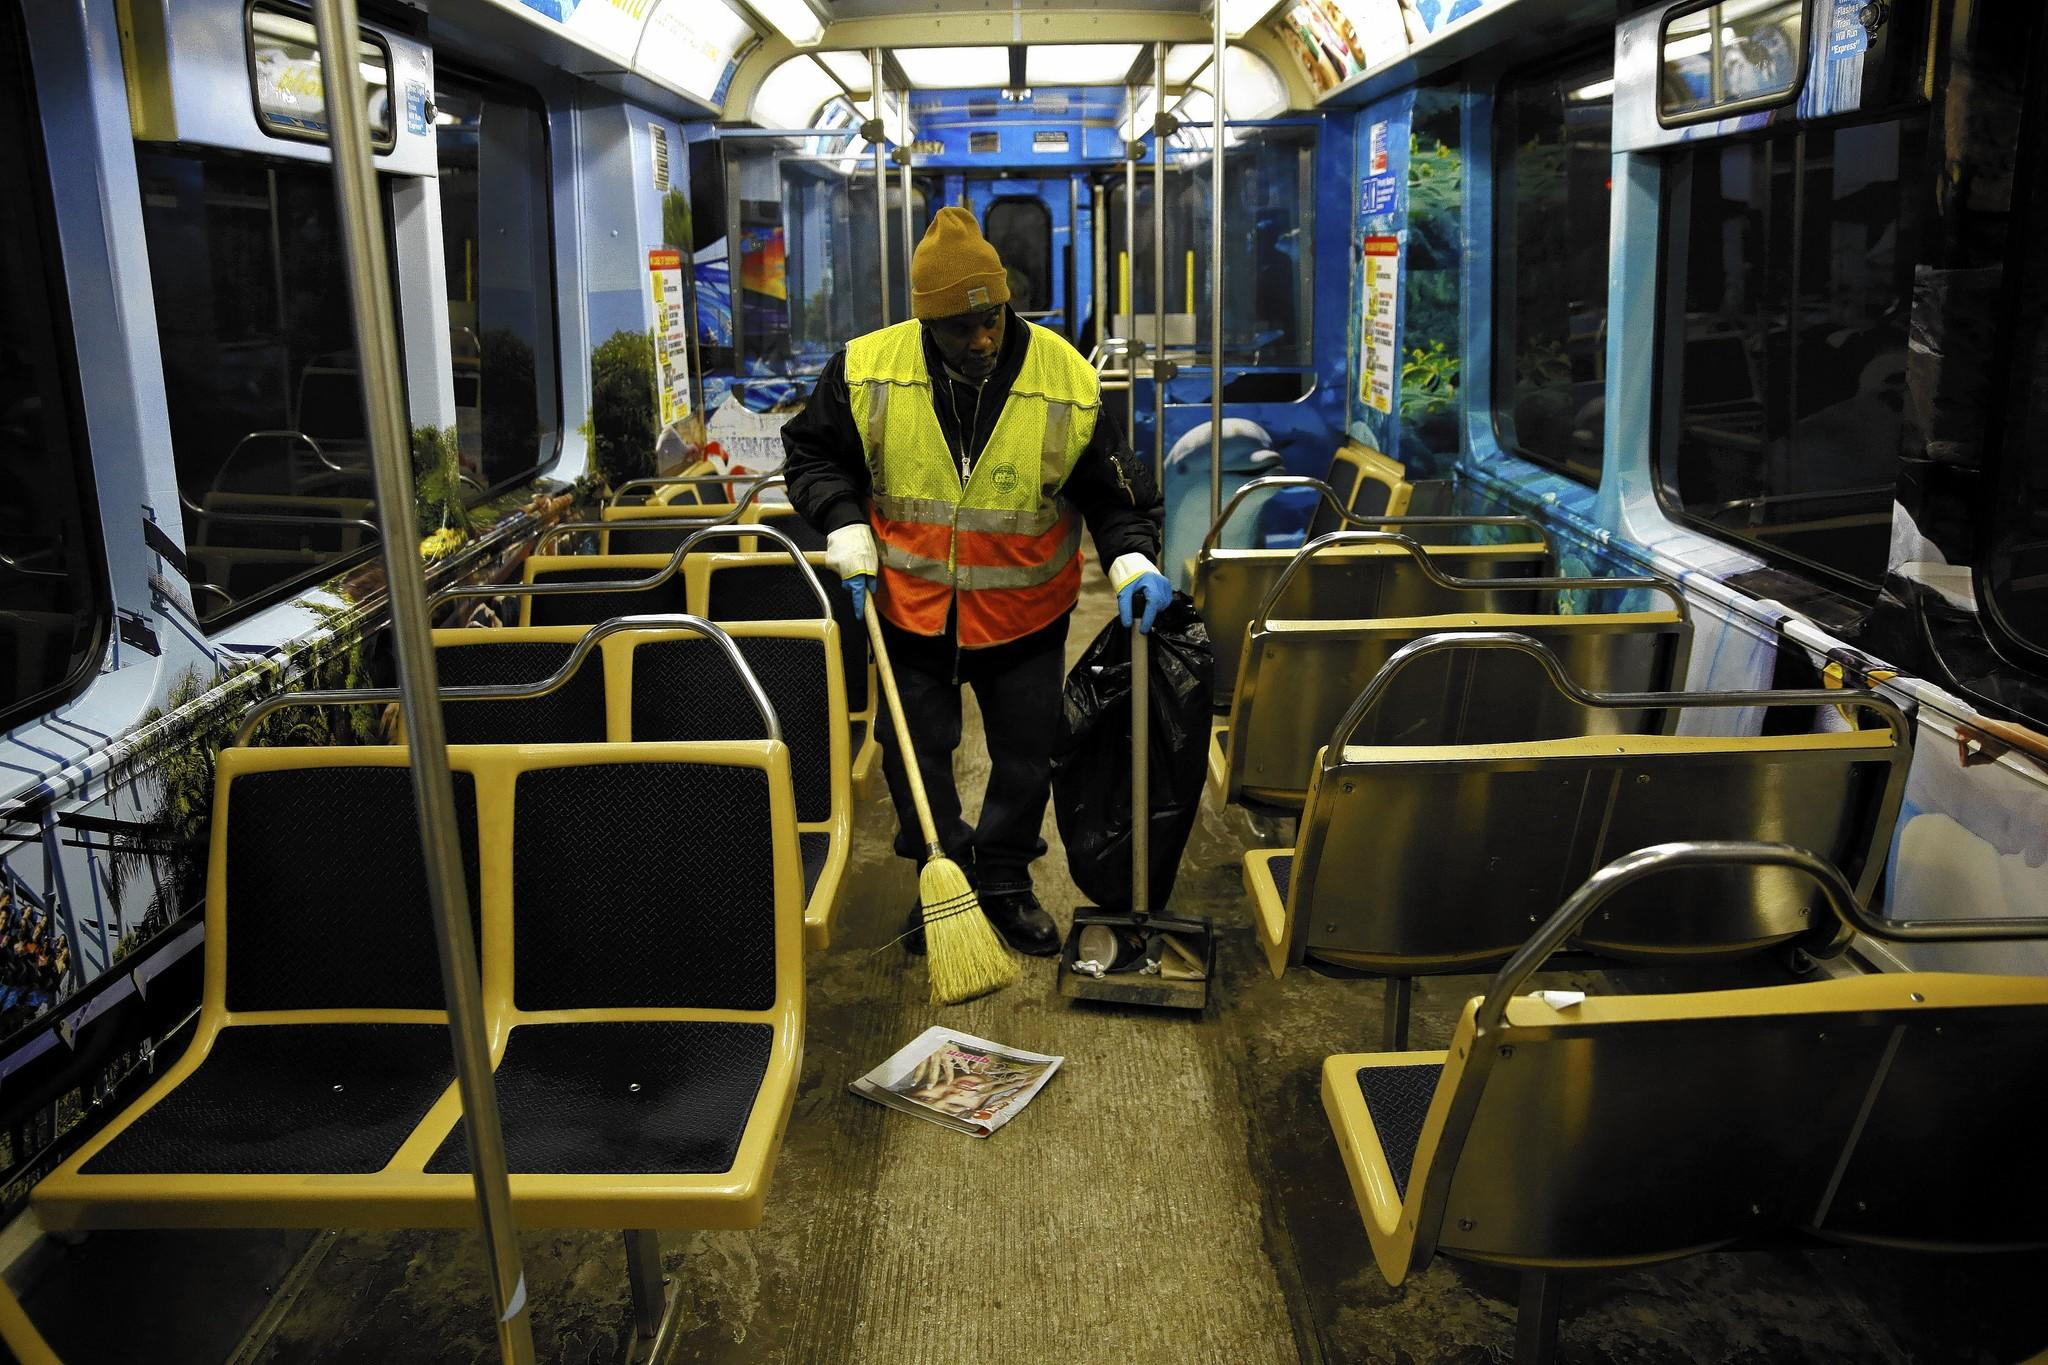 CTA worker cleans a train car this month. The agency has received more complaints of dirty rail cars since late December.